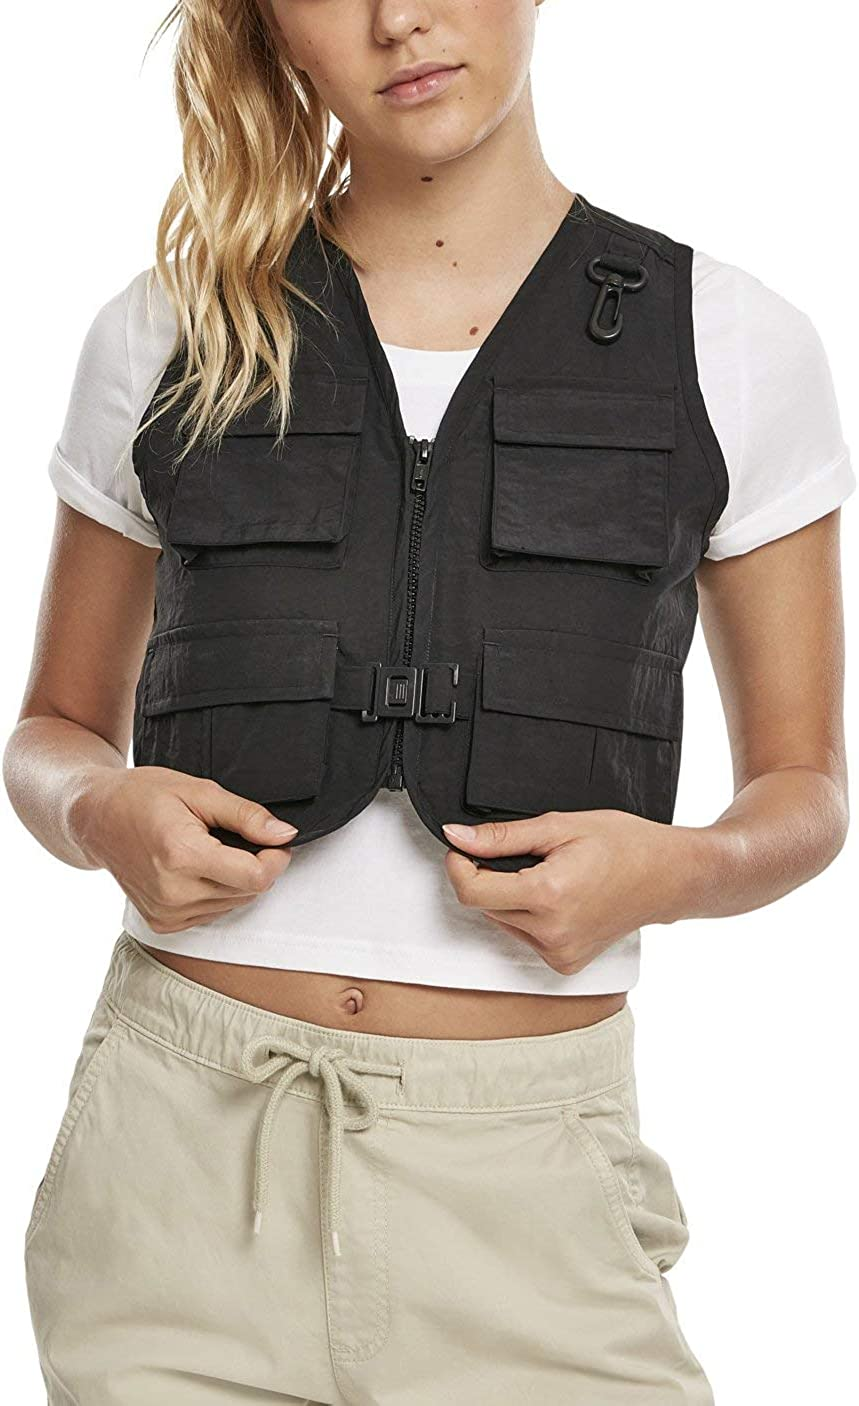 Combat vest for women xs why did marjorie shostak choose nisa investment